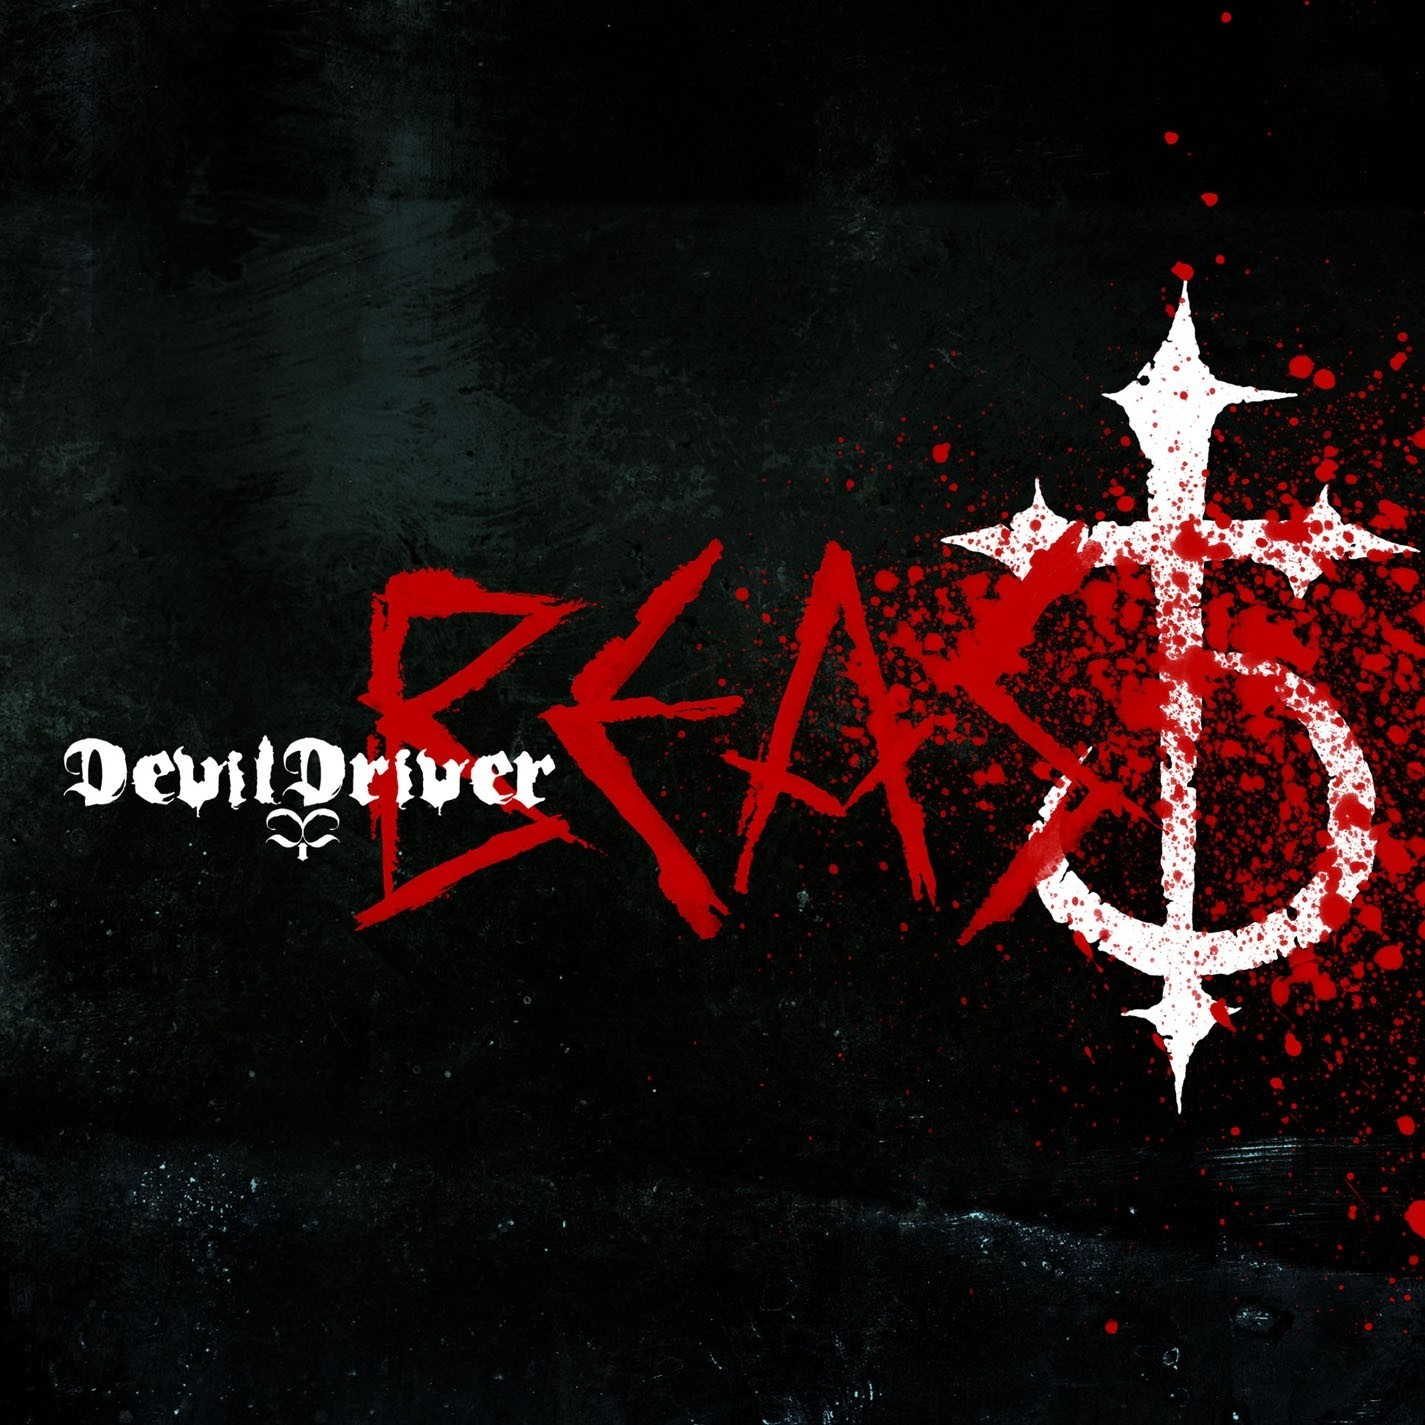 metalcore album covers devildriver HD Wallpaper